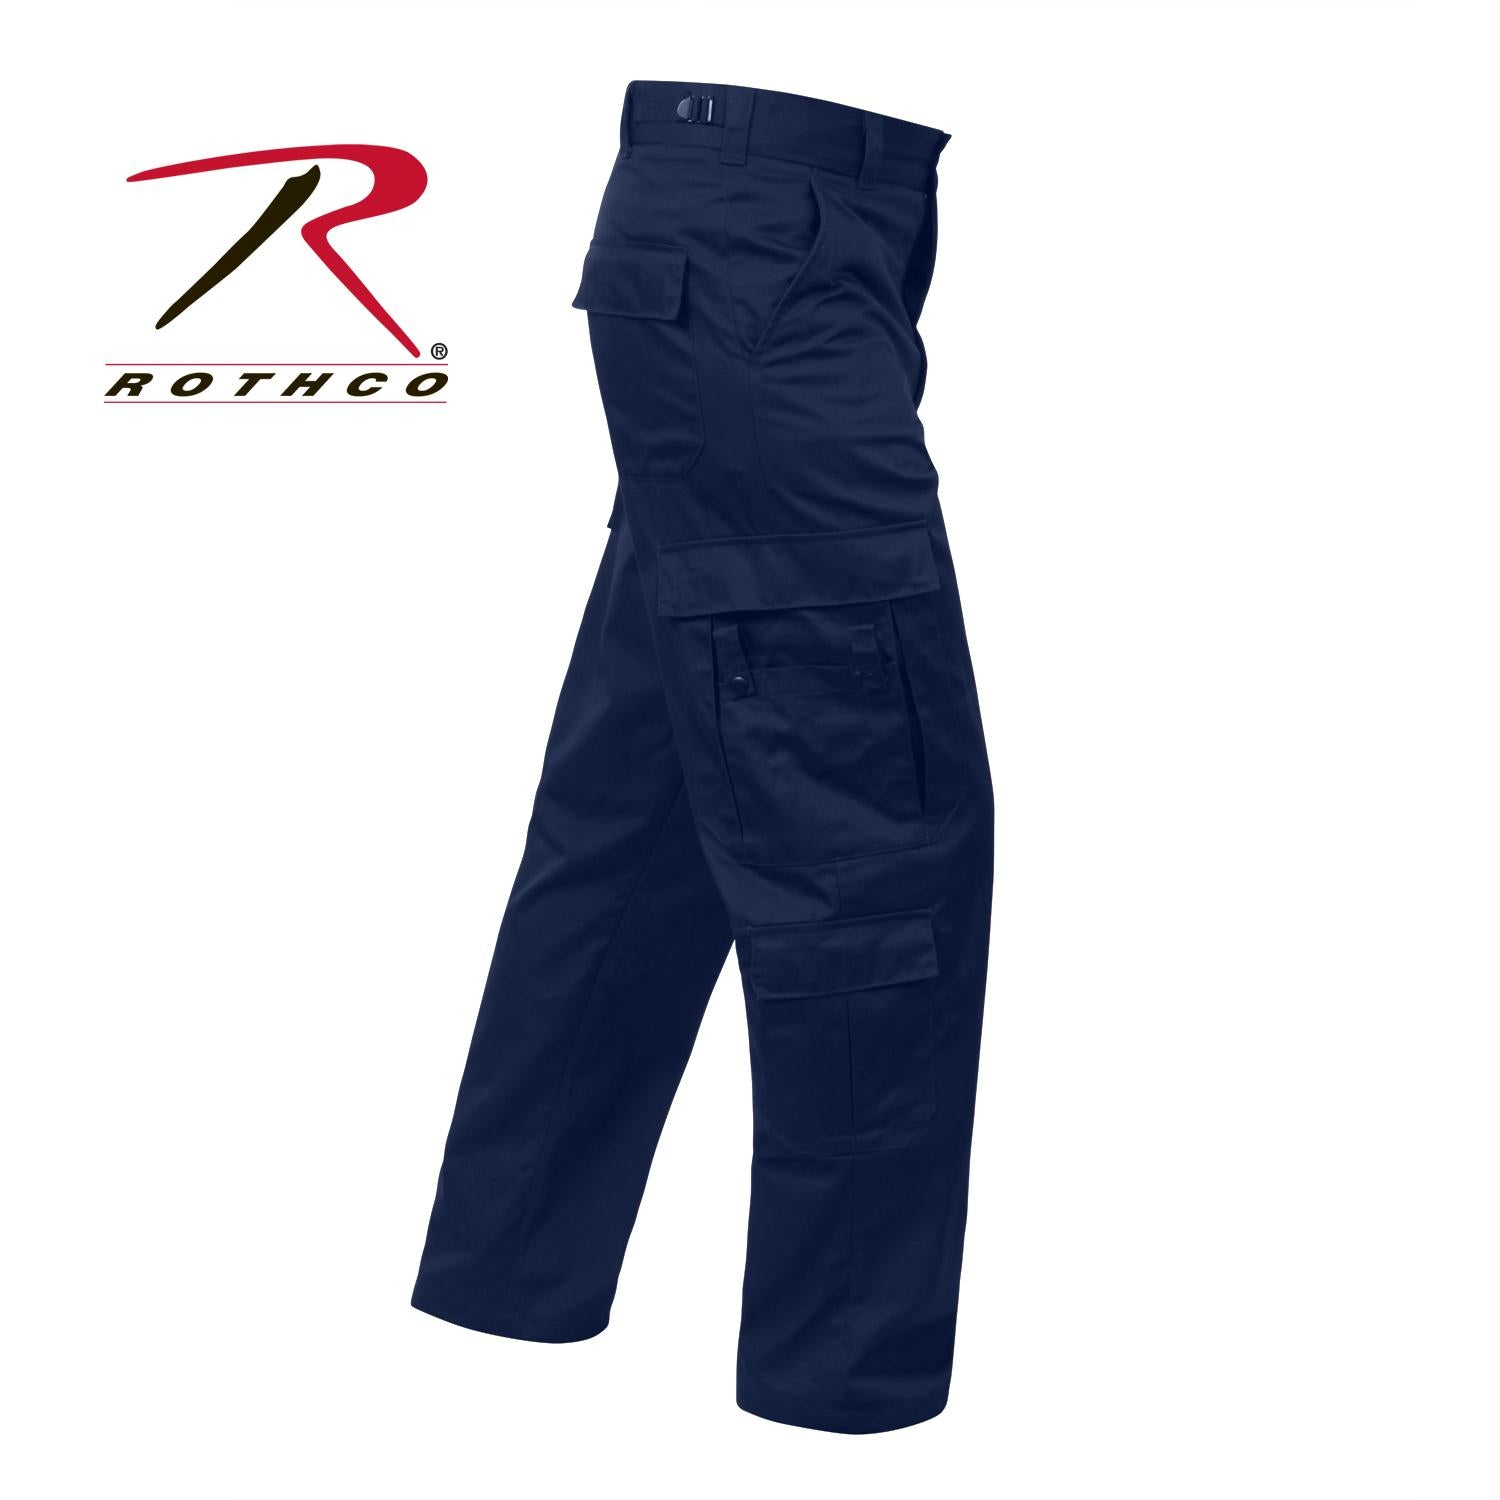 Rothco EMT Pants - Navy Blue / 5XL